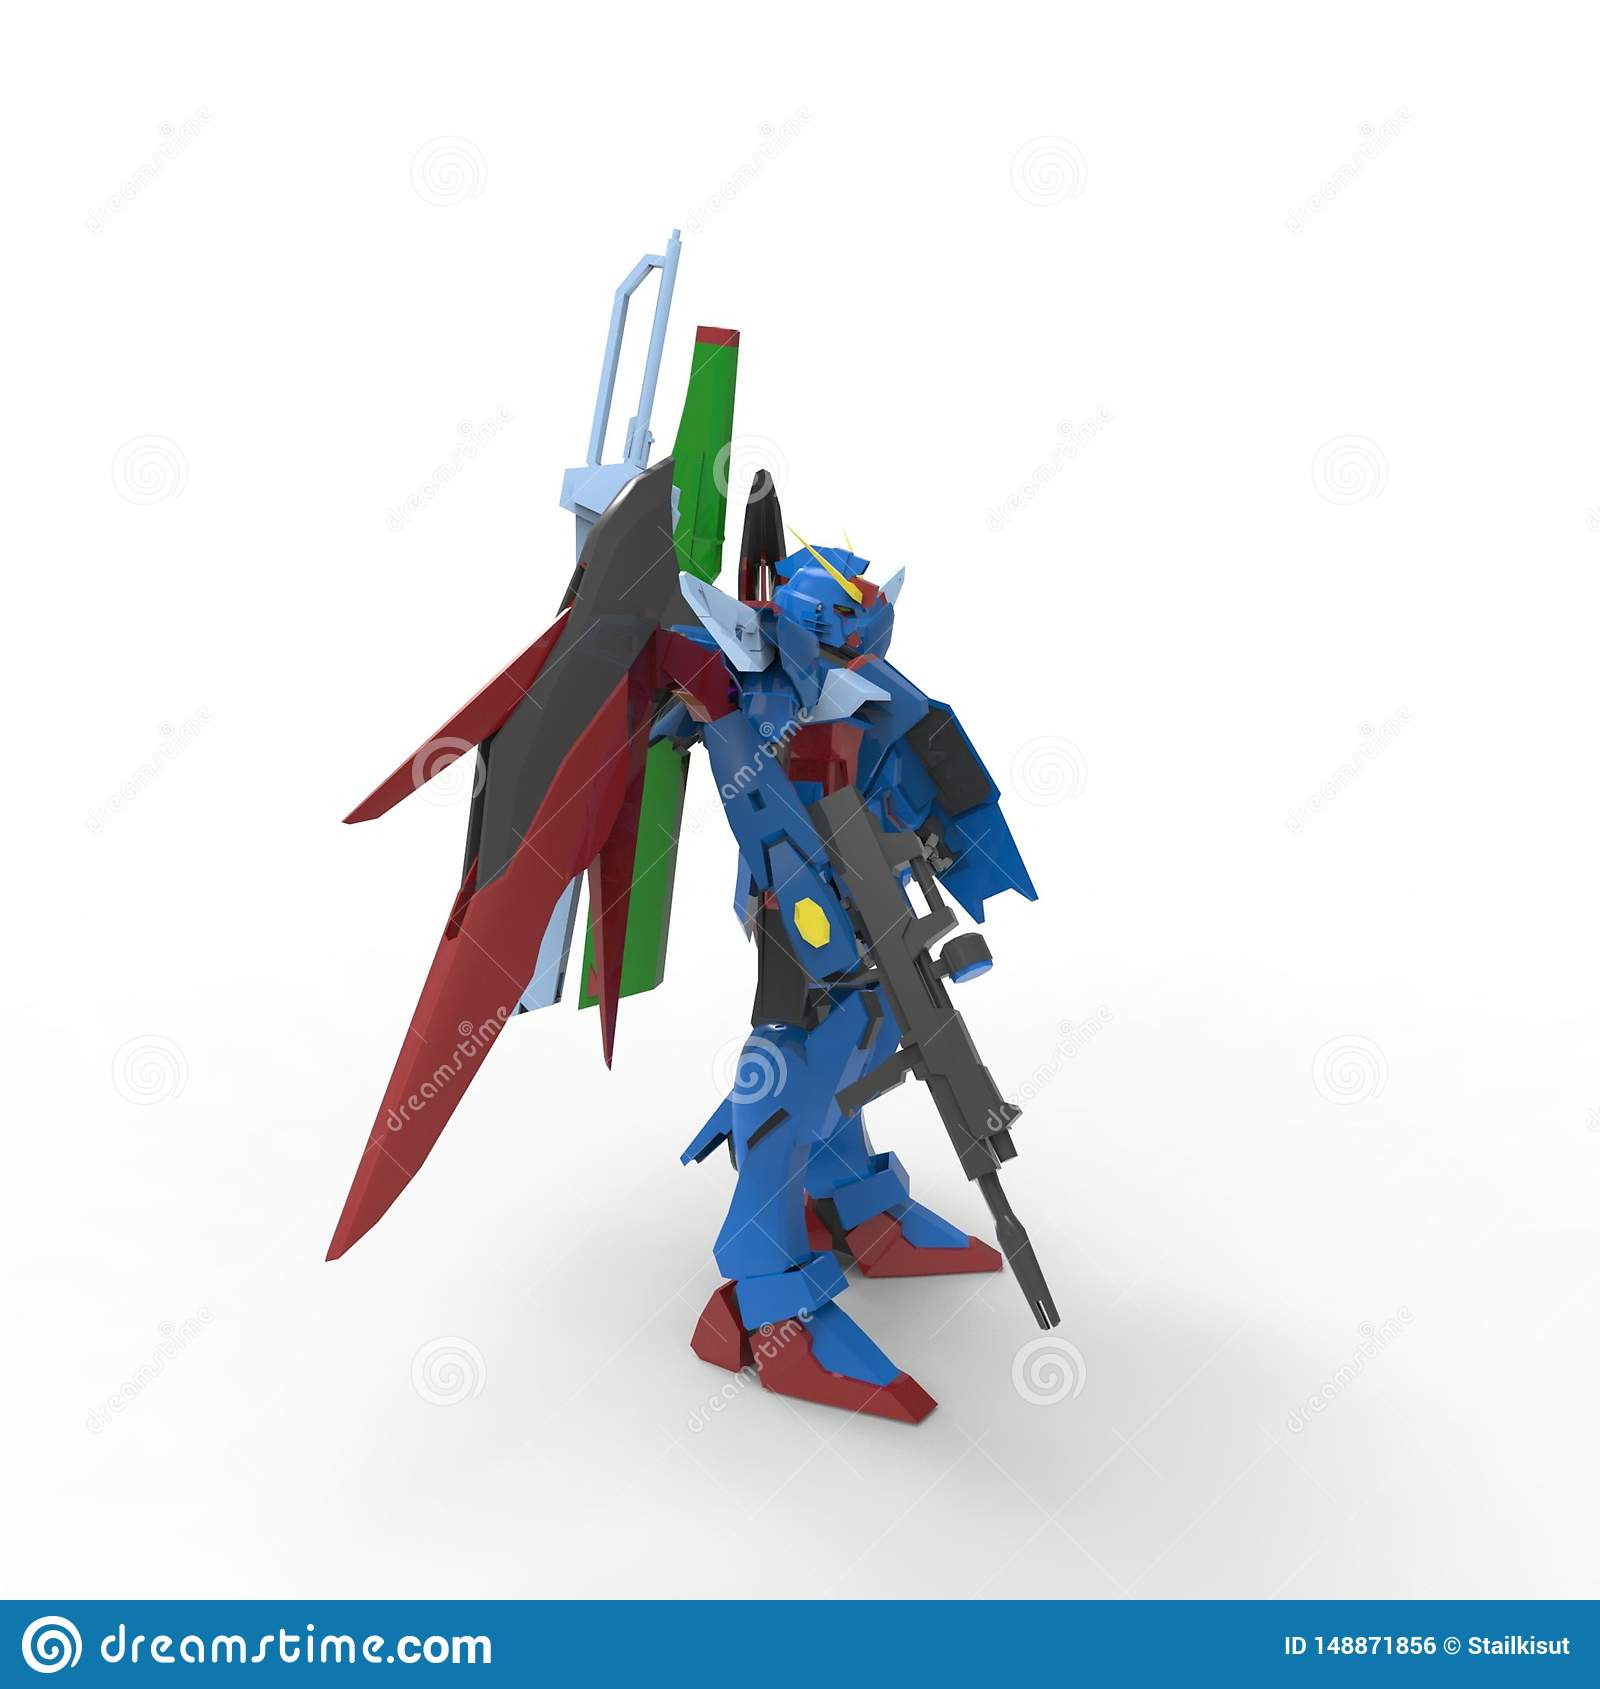 Sci-fi mech soldier standing on a white background. Military futuristic robot with a green and gray color metal. Mech controlled